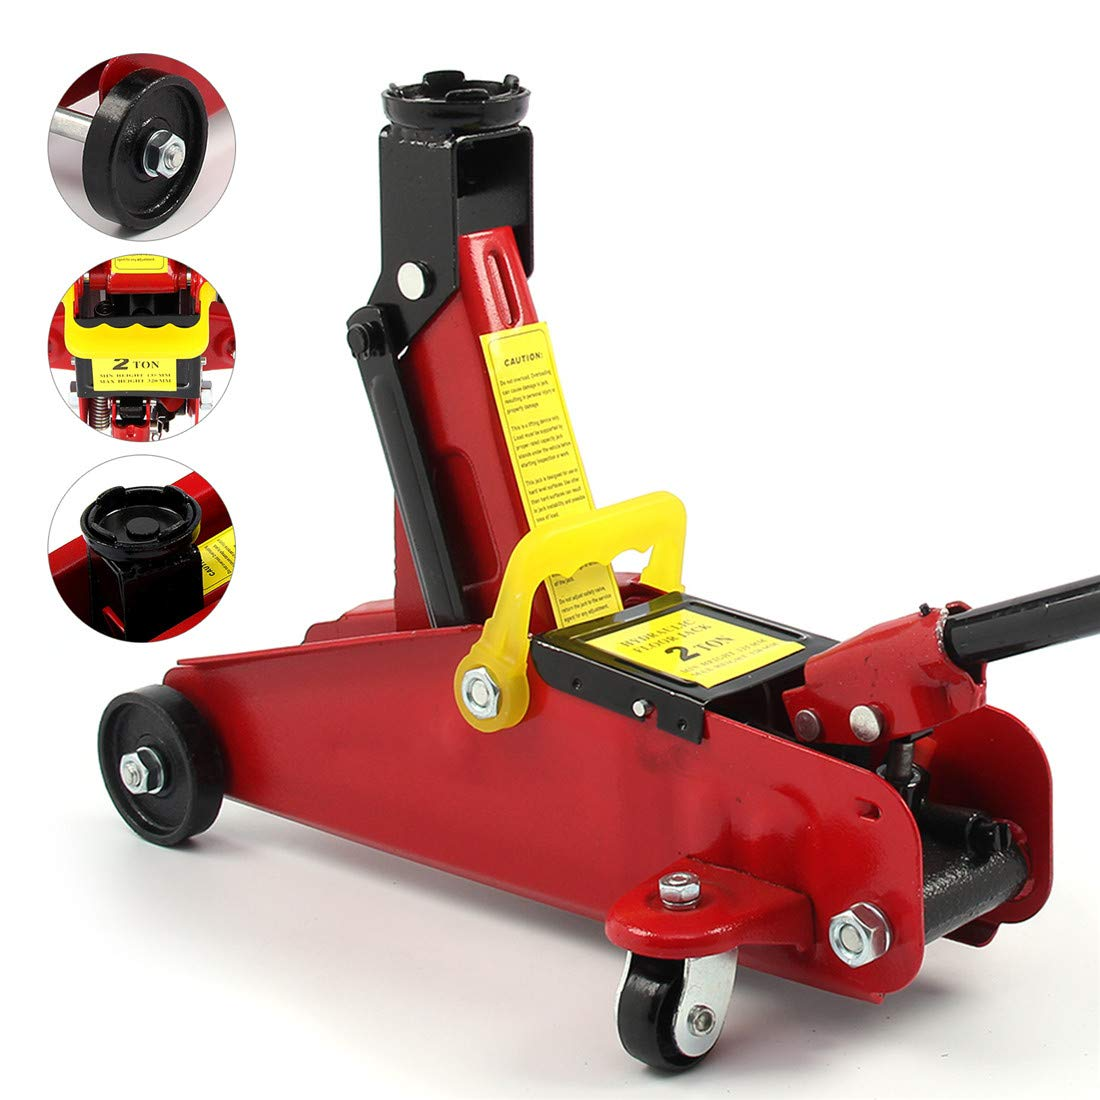 Car Jack Kit 2 Ton Hydraulic Jack Extend From 135MM To 320MM /& 3 Ton Heavy Duty Car Jack Axle Stands